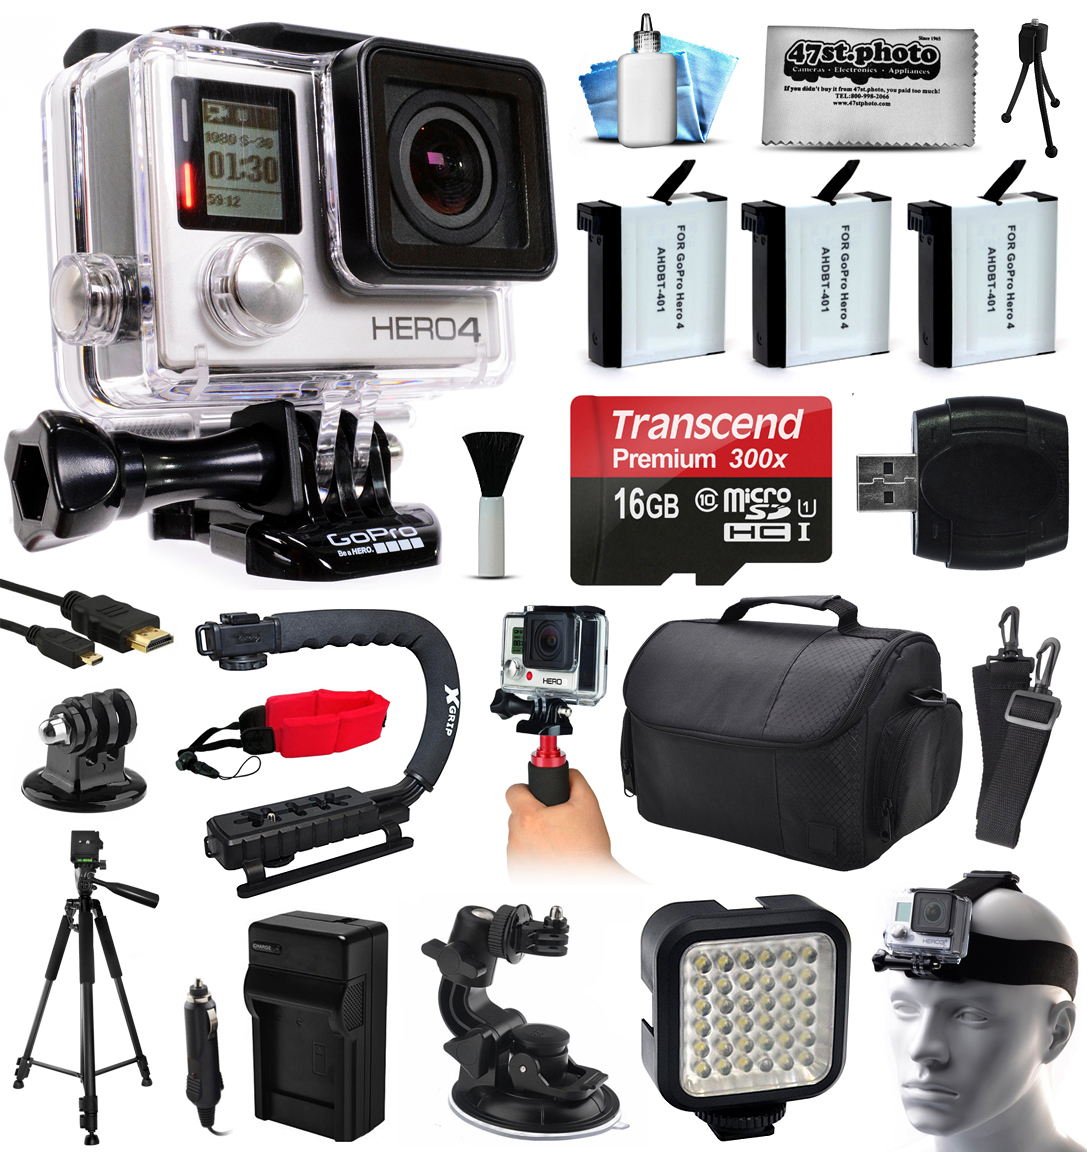 GoPro HERO4 Hero 4 Black Edition 4K Action Camera Camcorder with 16GB MicroSD, 3x Battery, Charger, Large Case, Handle, Tripod, Car Mount, LED Video Light, Head Helmet Strap, Cleaning Kit (CHDHX-401)